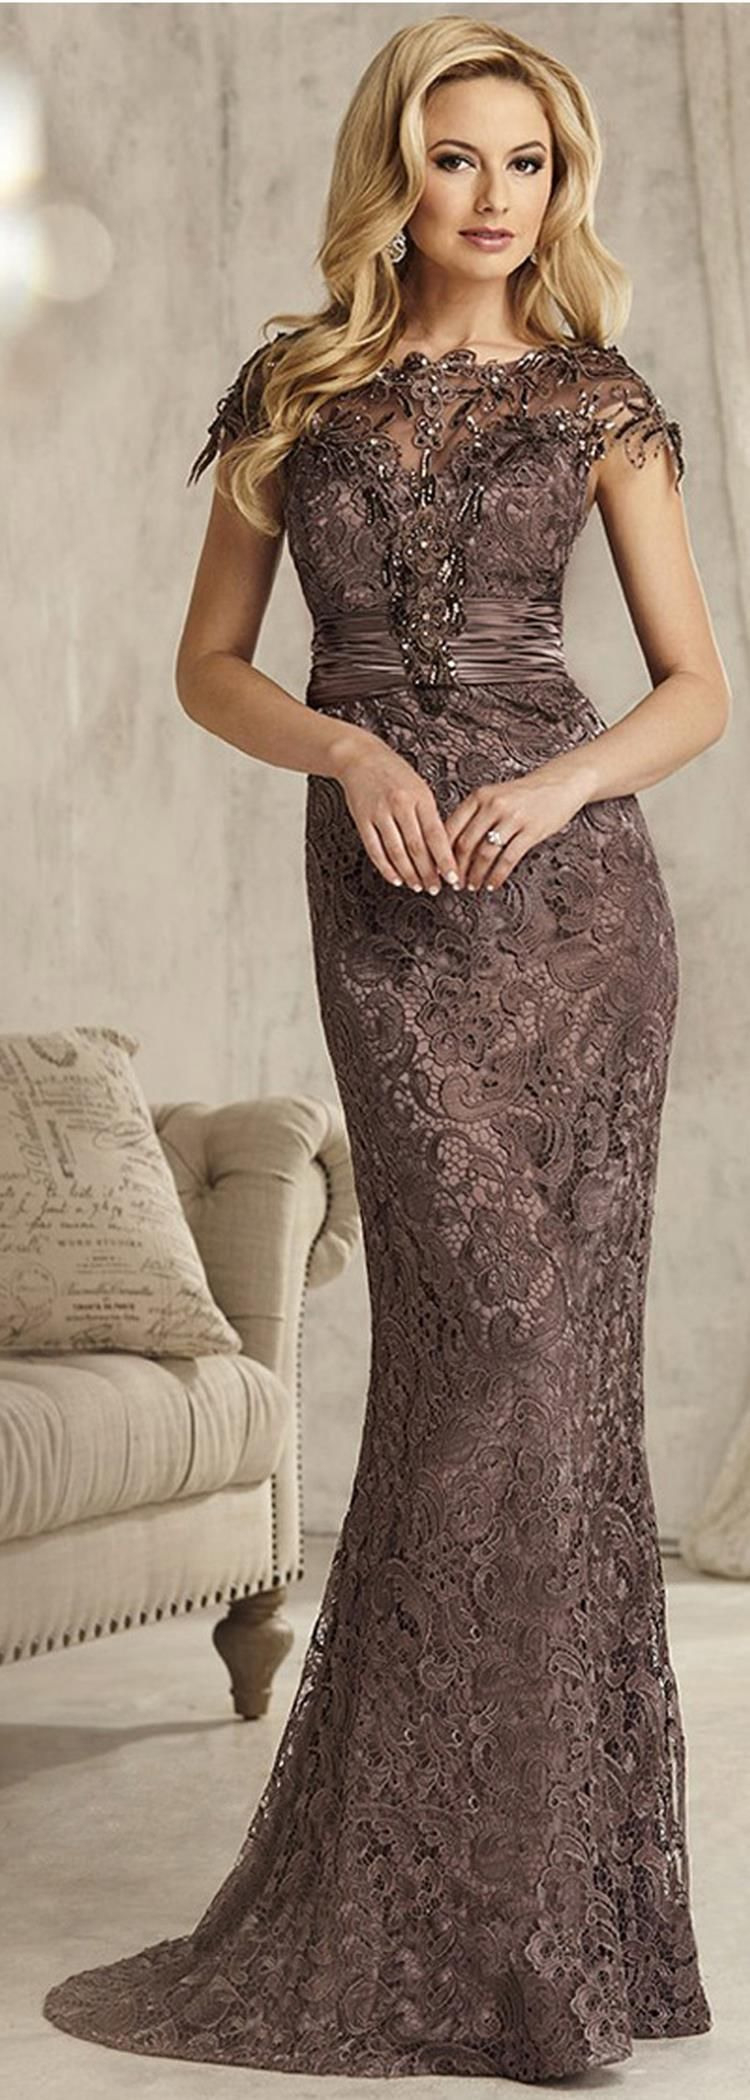 Mother Of The Groom Dresses For Fall Wedding 6 True Style